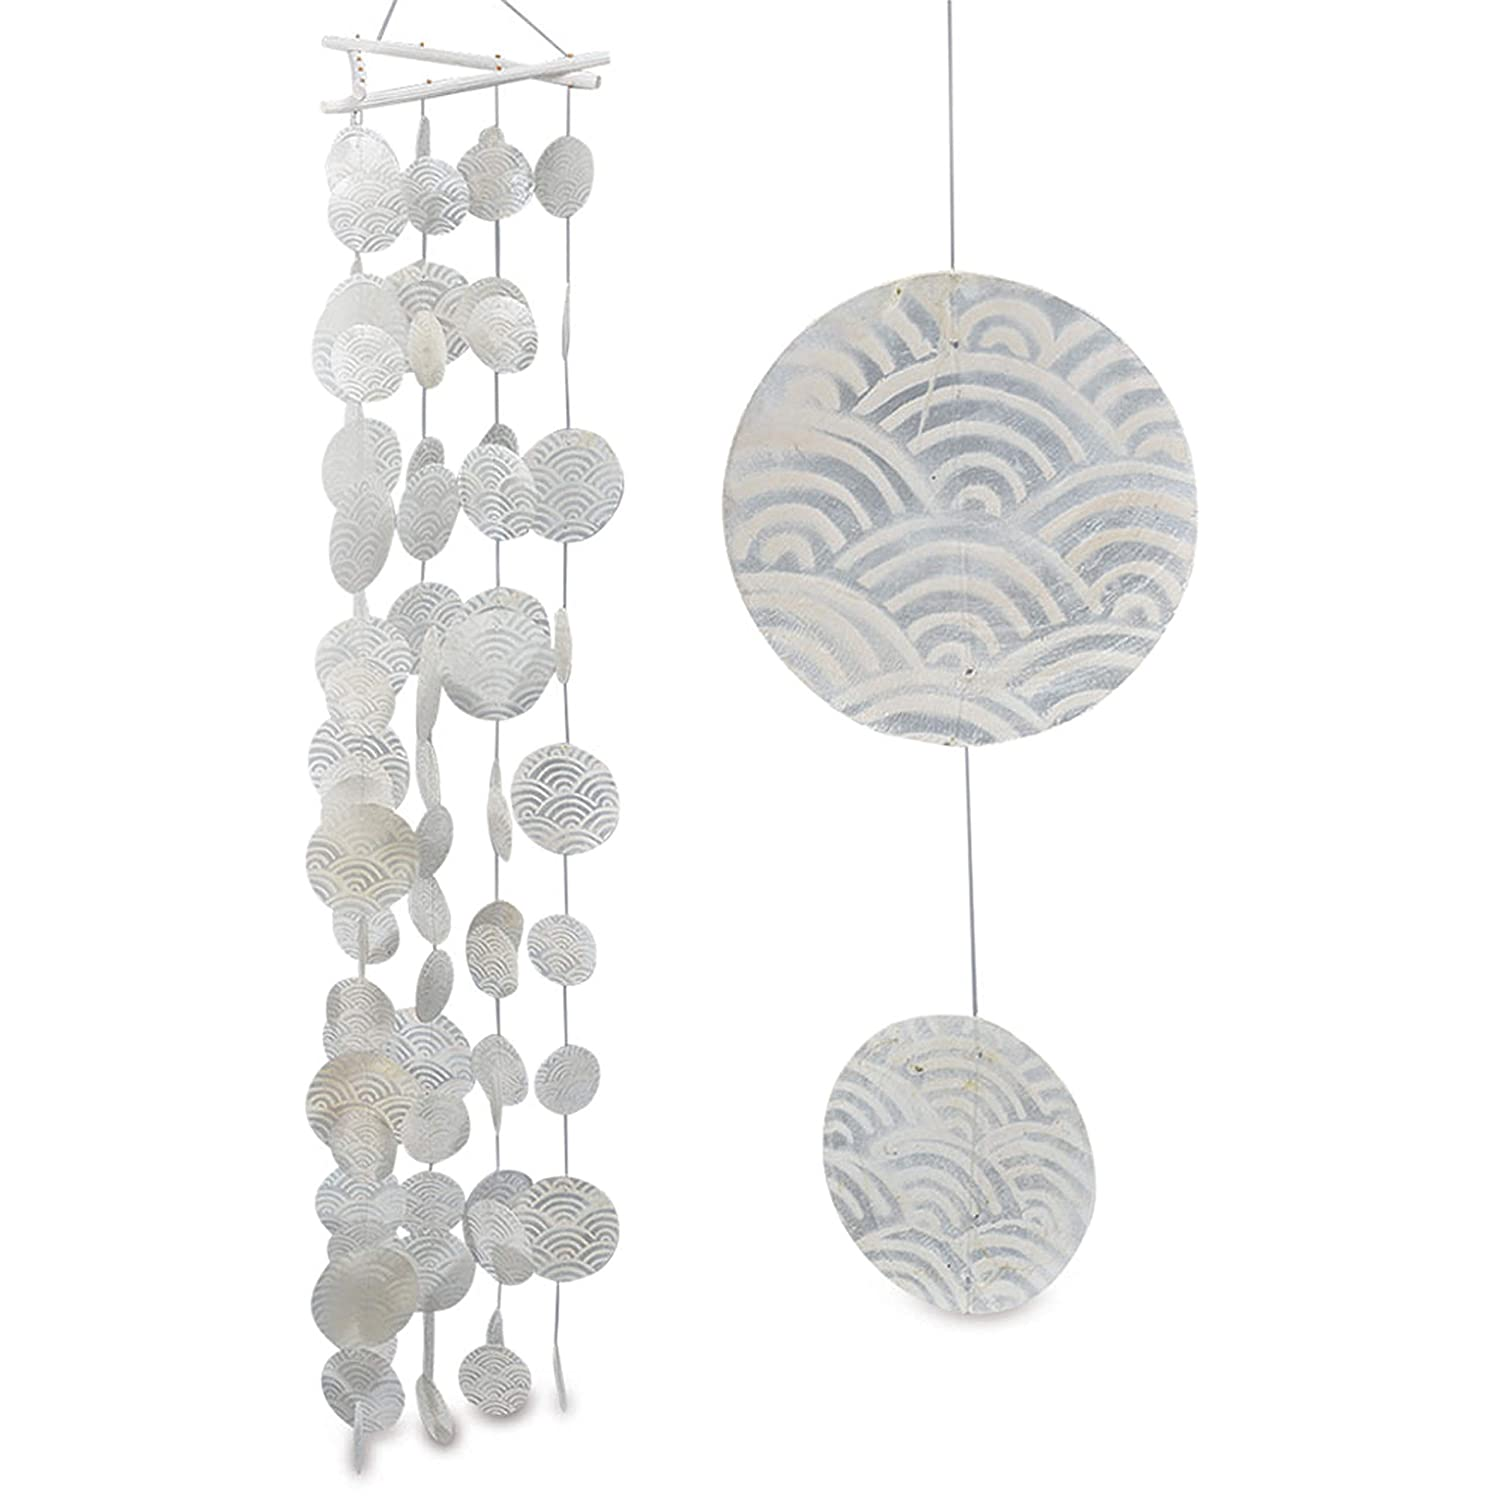 CAPIZ SHELL WIND CHIME GIOVANE WHITE NACRE - Tinas Collection Boltze Gruppe GmBH